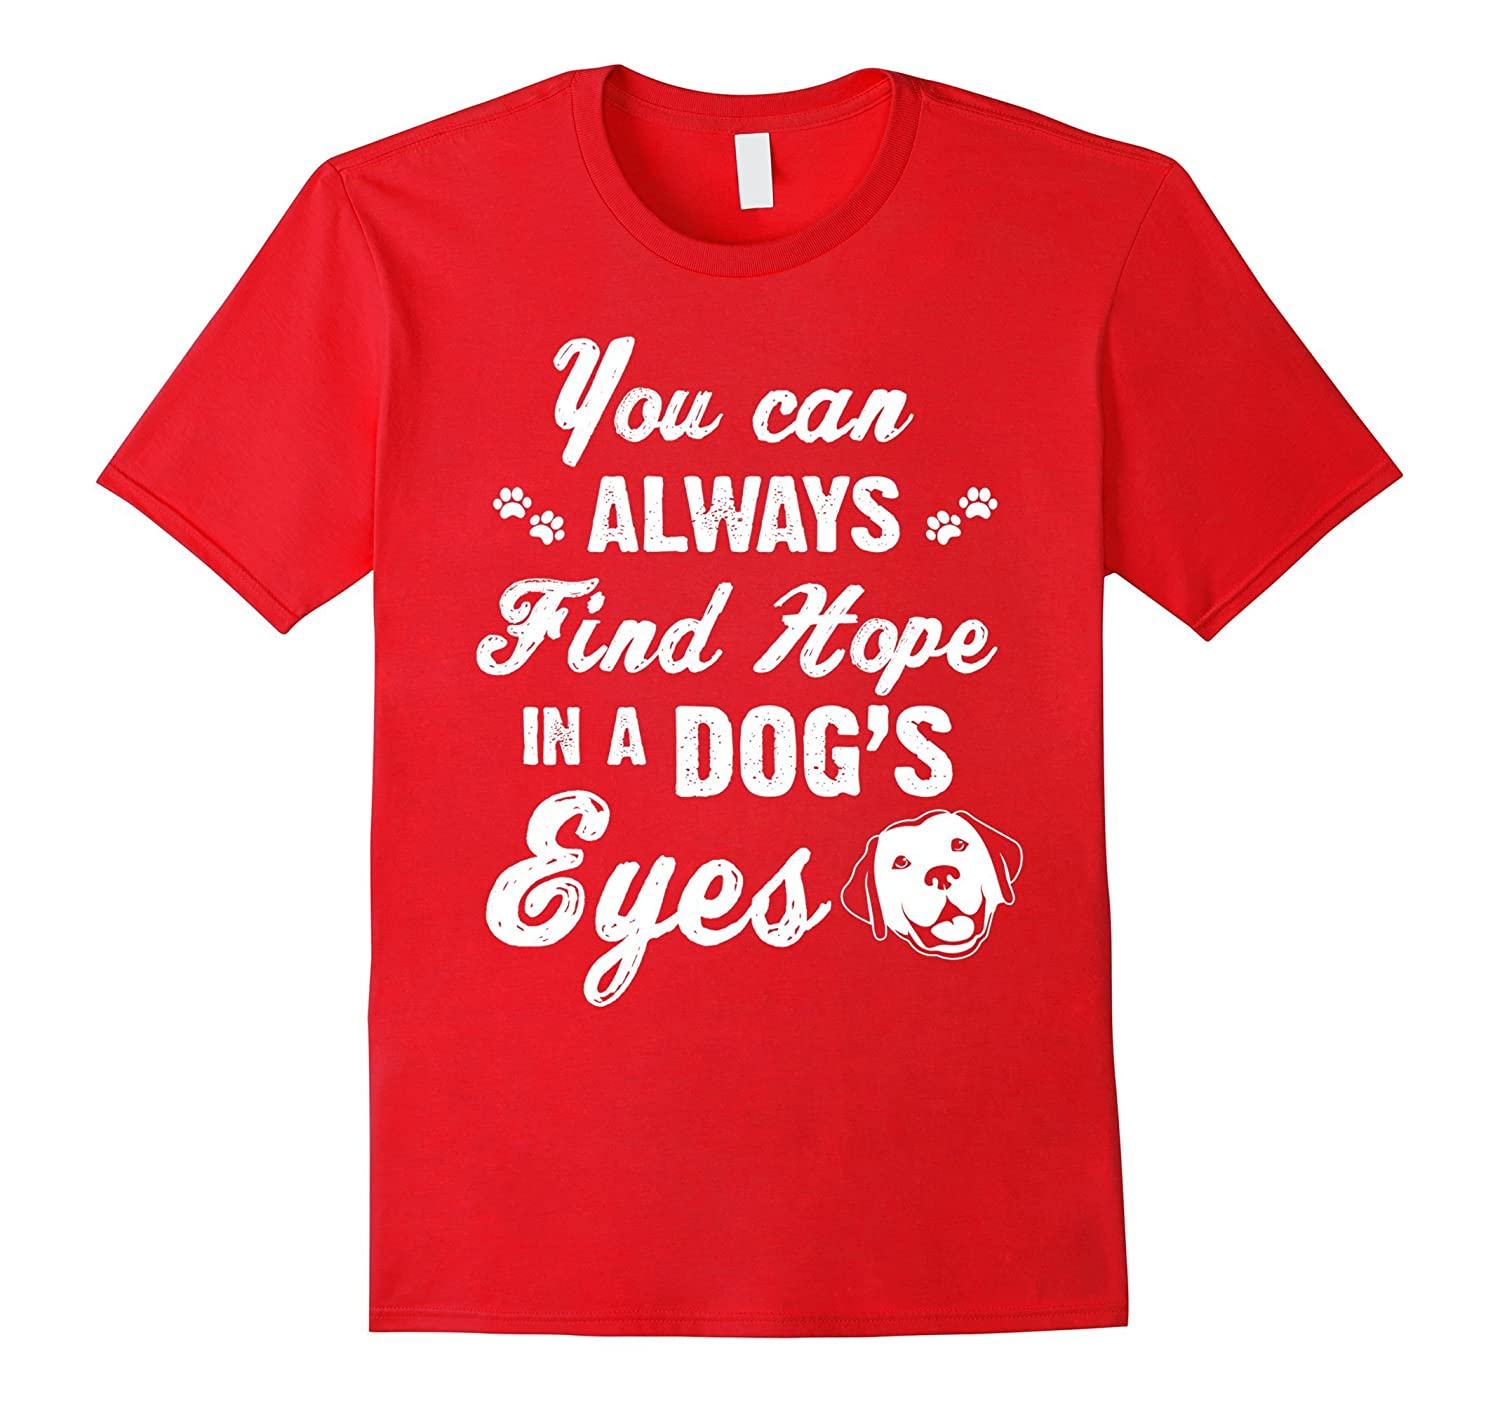 Cute Dog T-Shirt - You Can Always Find Hope In A Dogs Eyes-Vaci